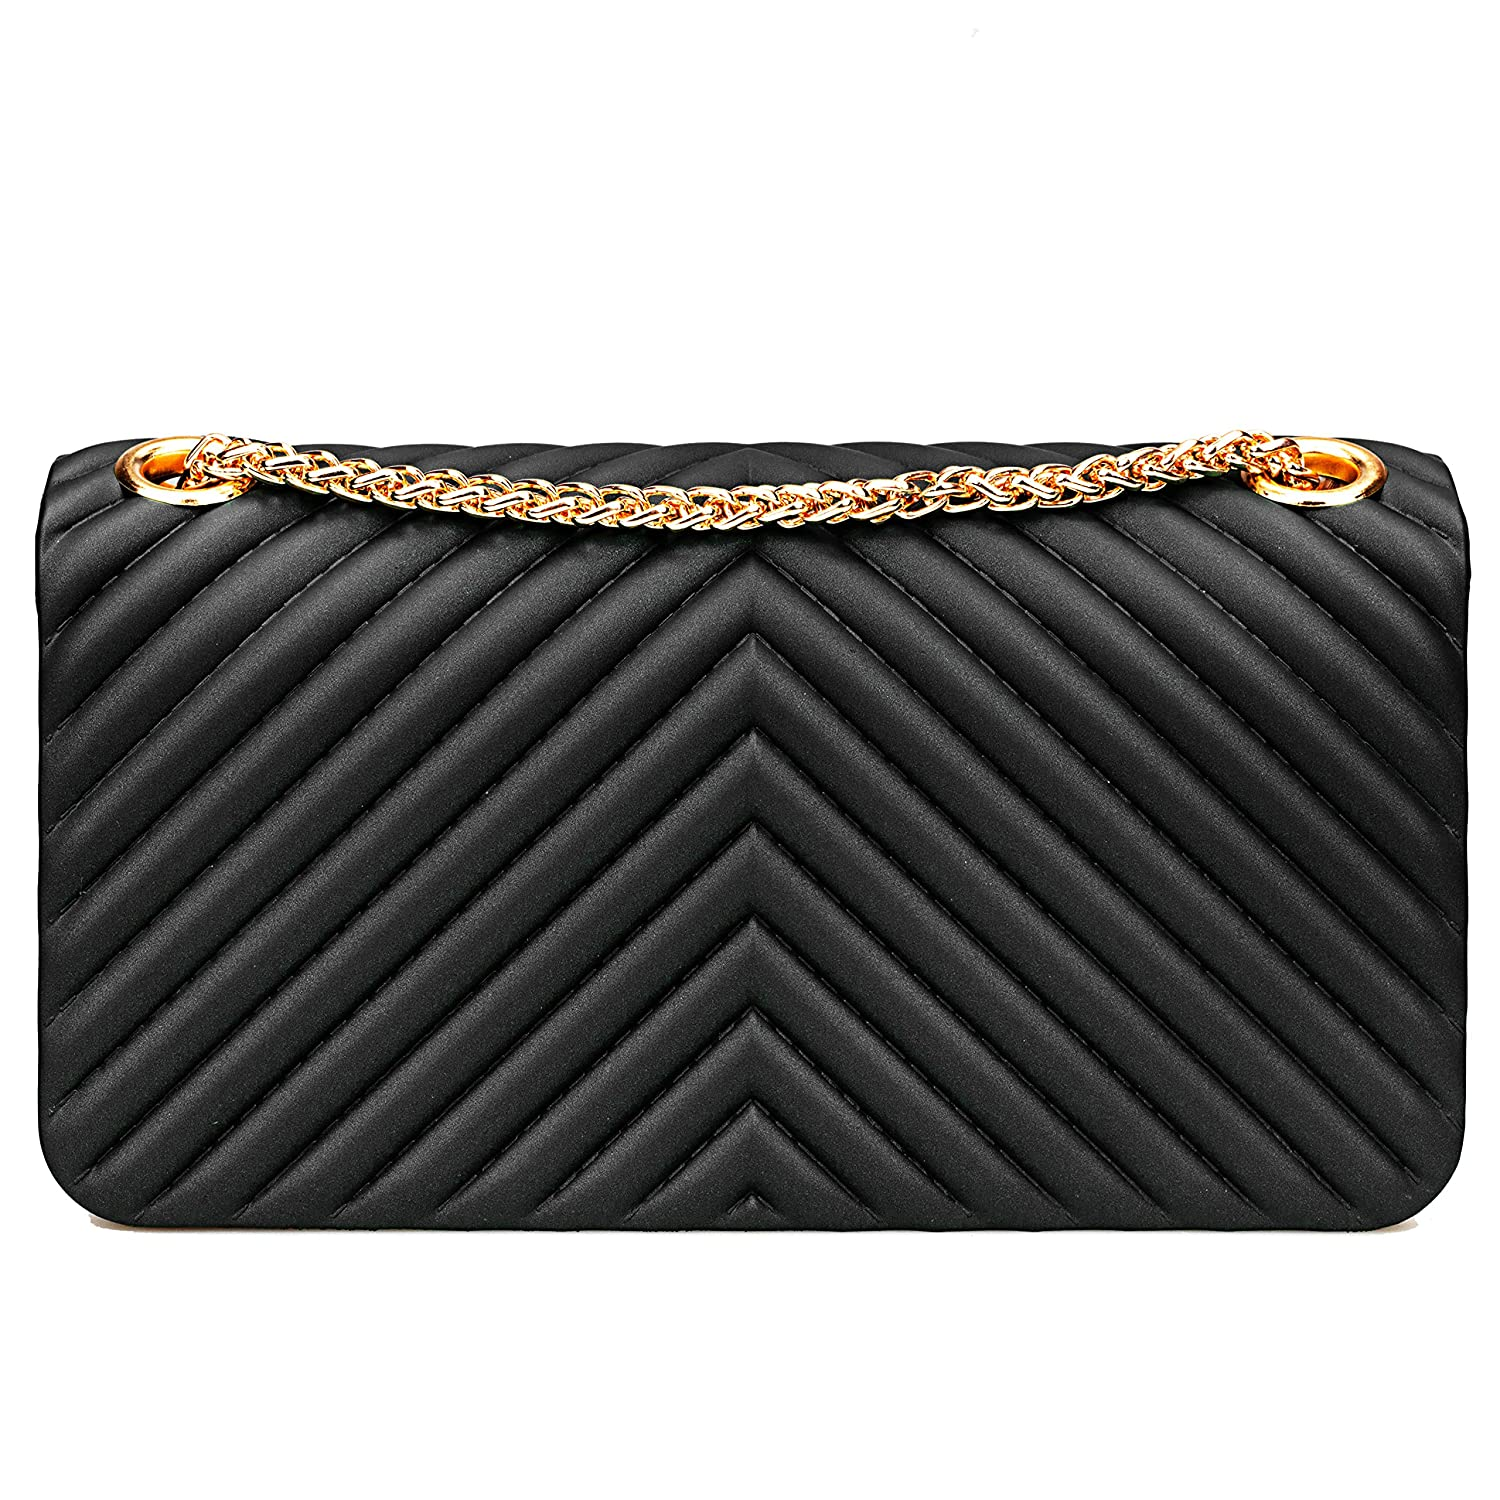 21486c9a18ed Women Fashion Shoulder Bag Jelly Clutch Handbag Quilted Crossbody Bag with  Chain - Black  Handbags  Amazon.com